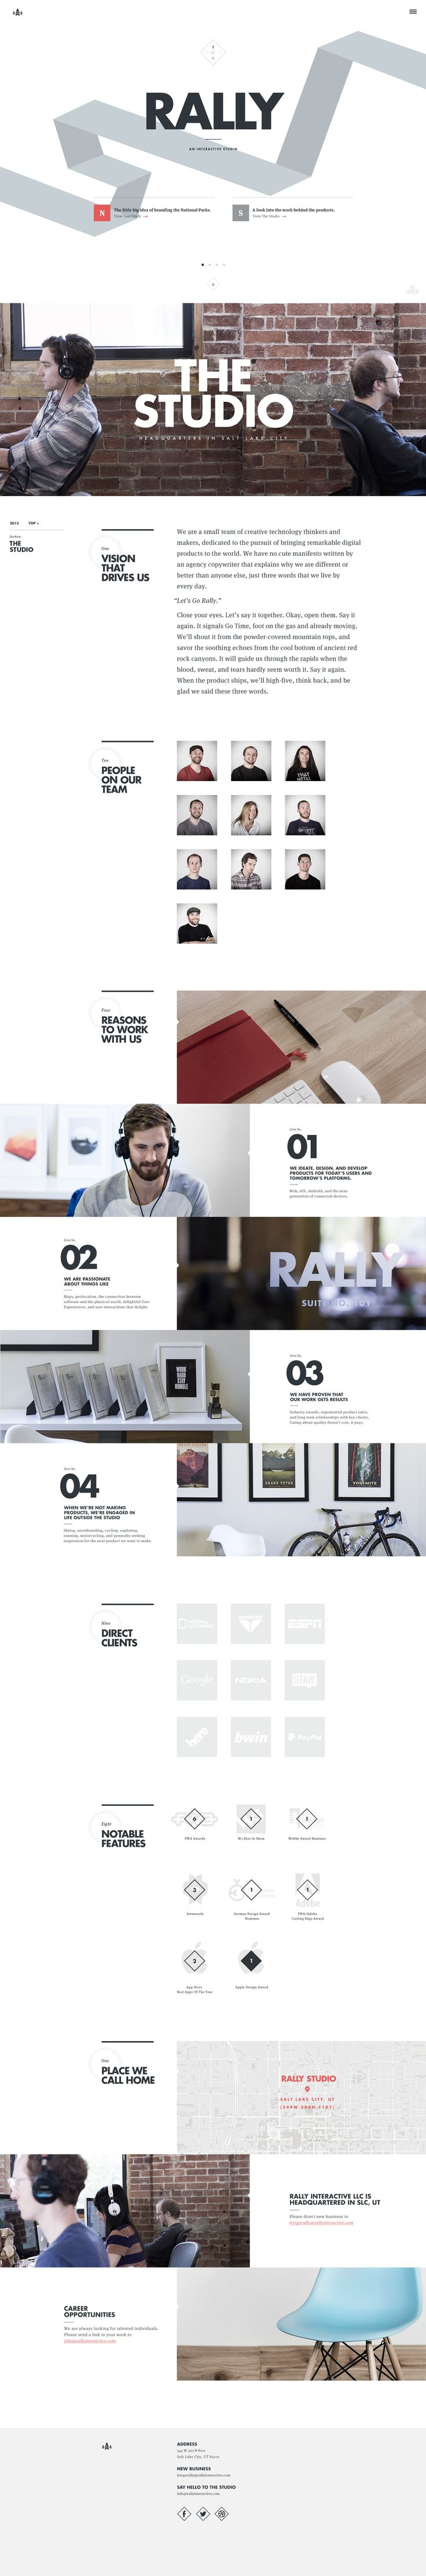 The Studio Page | Ben Mingo | Rally Interactive | dribbble